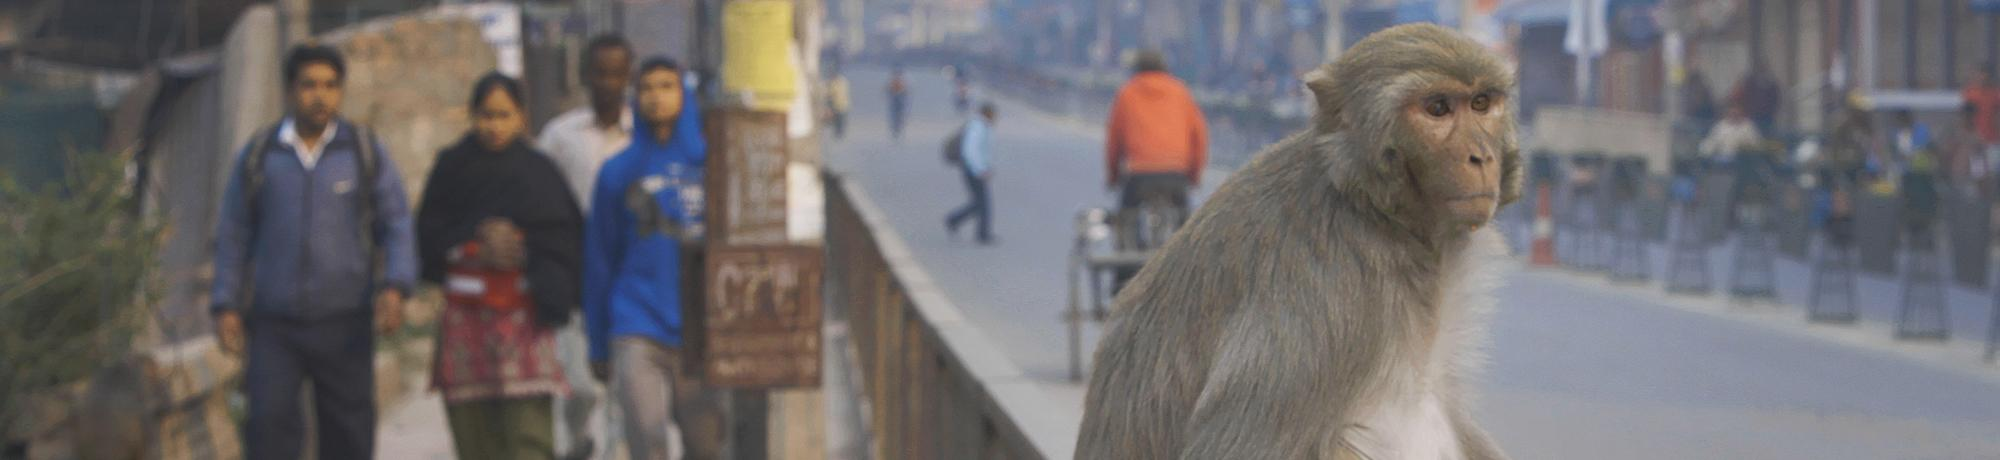 Rhesus macaque in Nepal